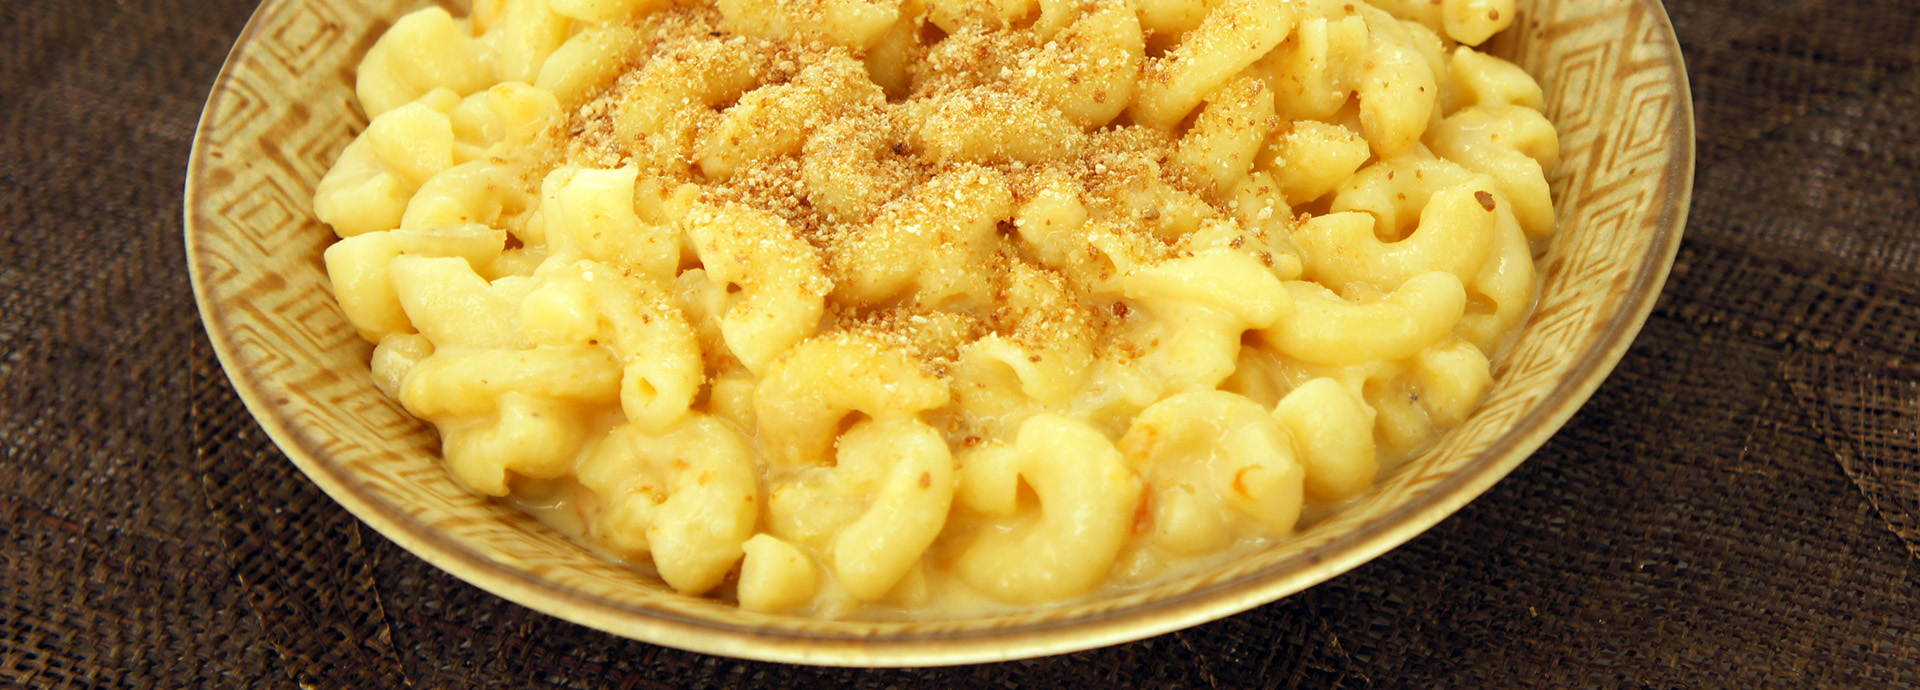 Skinner® - Baked Macaroni and Cheese with Crispy Breadcrumbs